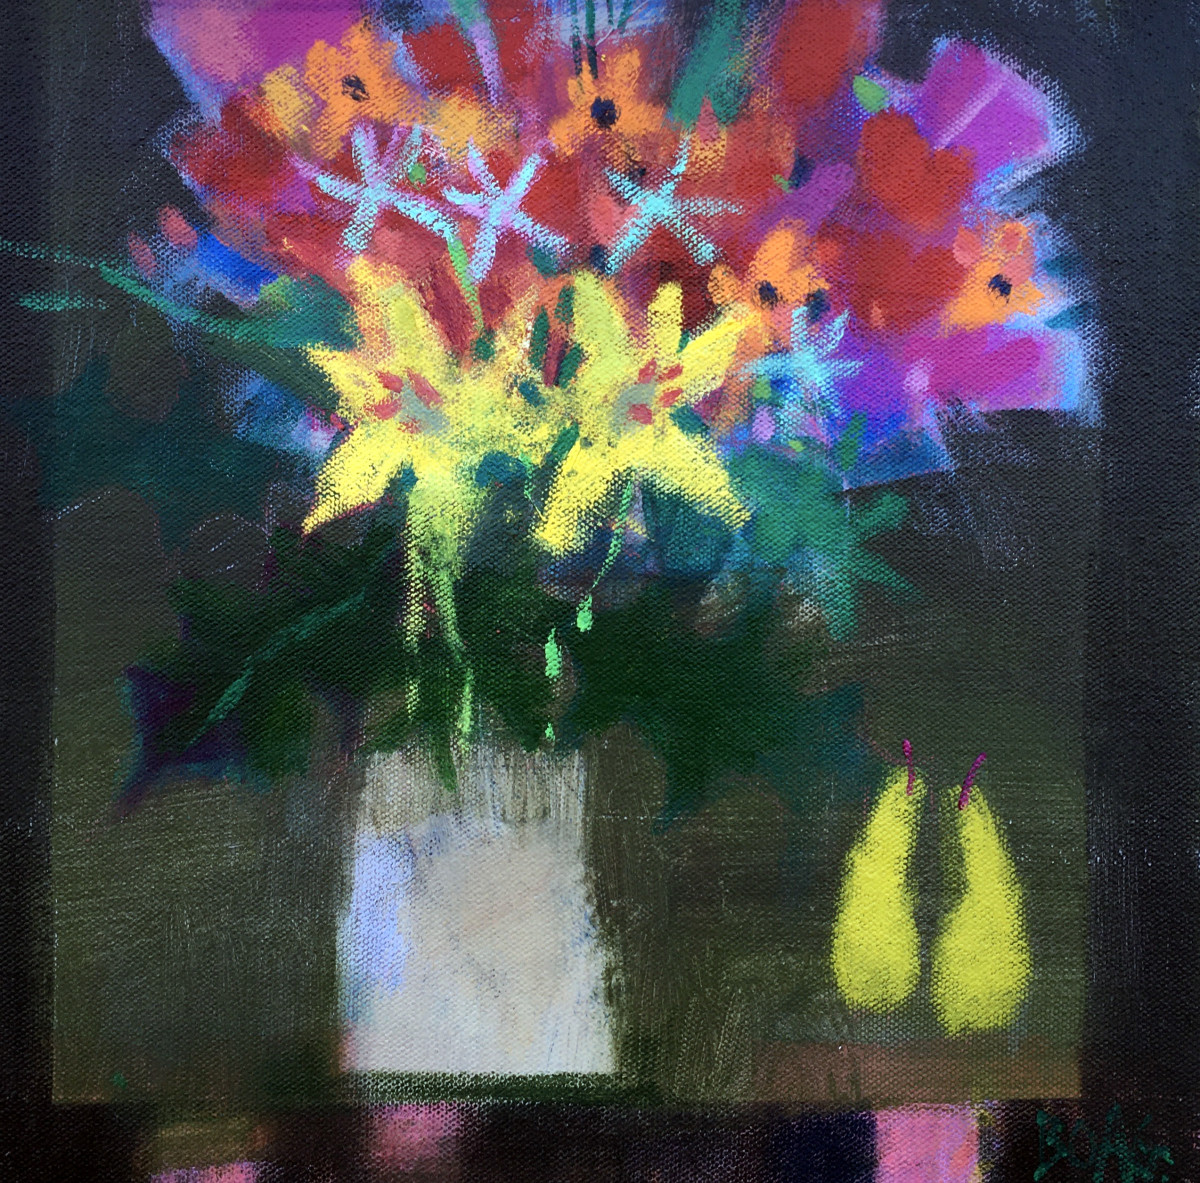 Yellow flowers and Pears by francis boag